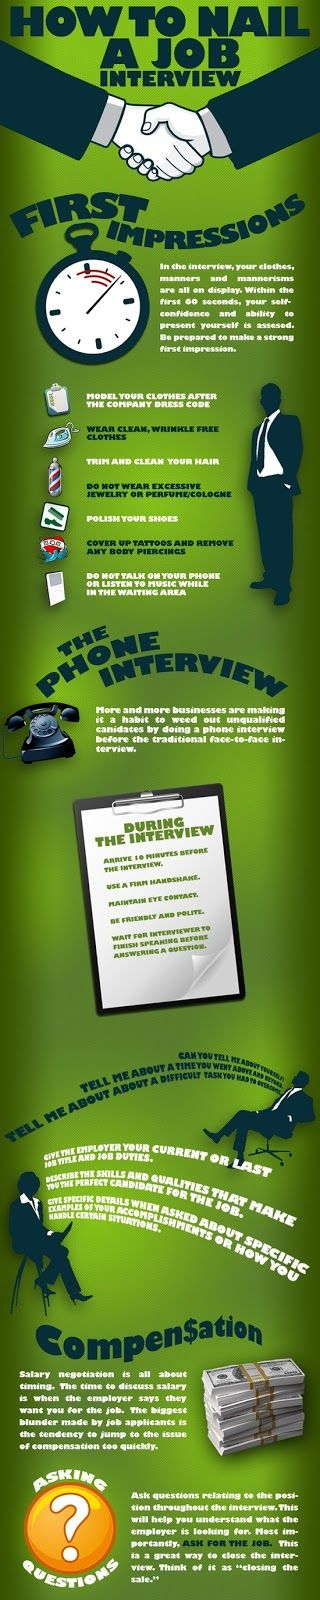 Young, Polished & Professional: How to Nail the Job Interview